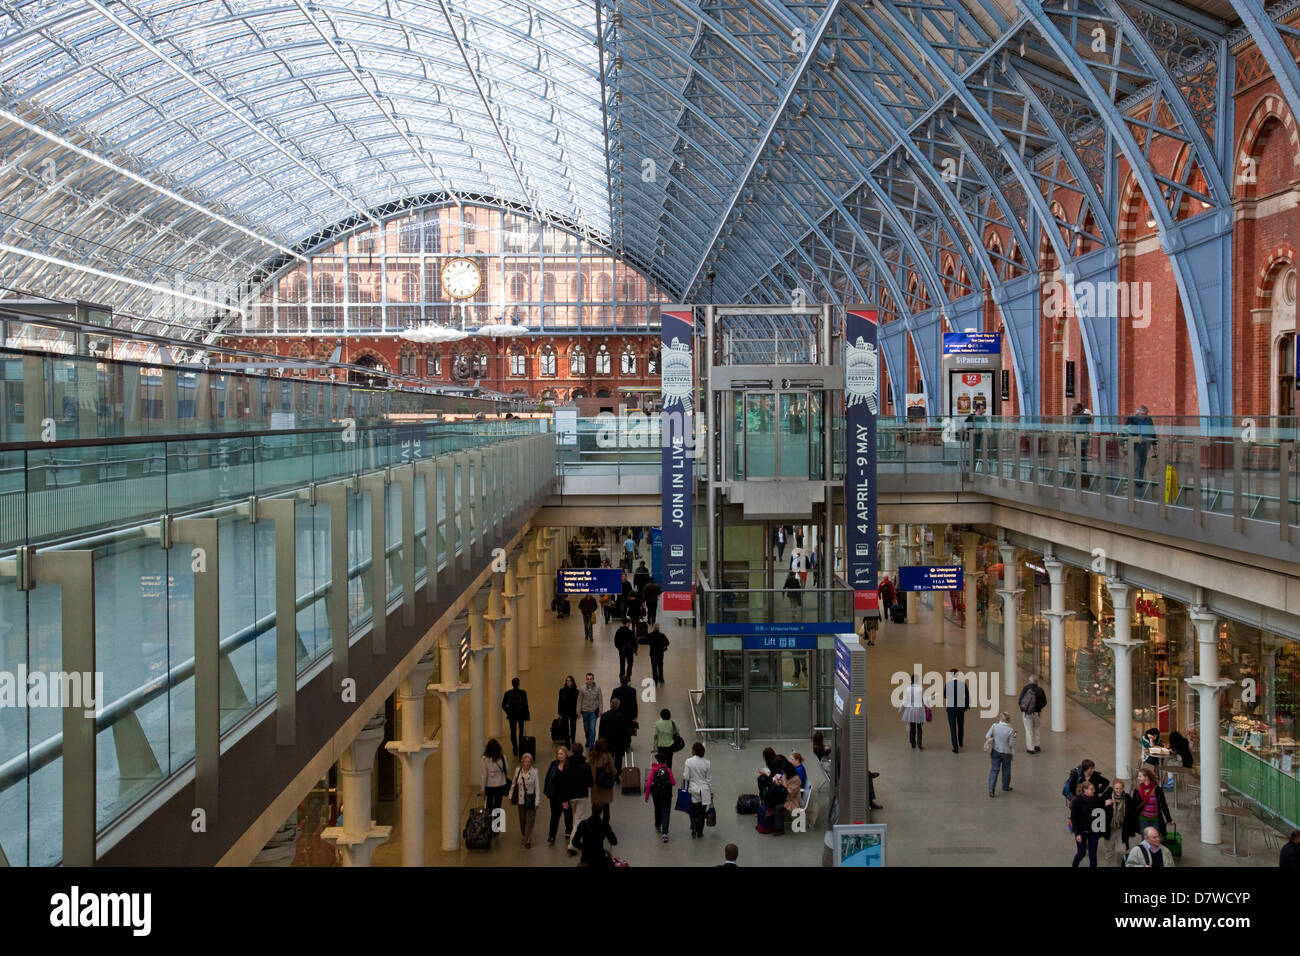 St Pancras International Train Station, London, England - Stock Image